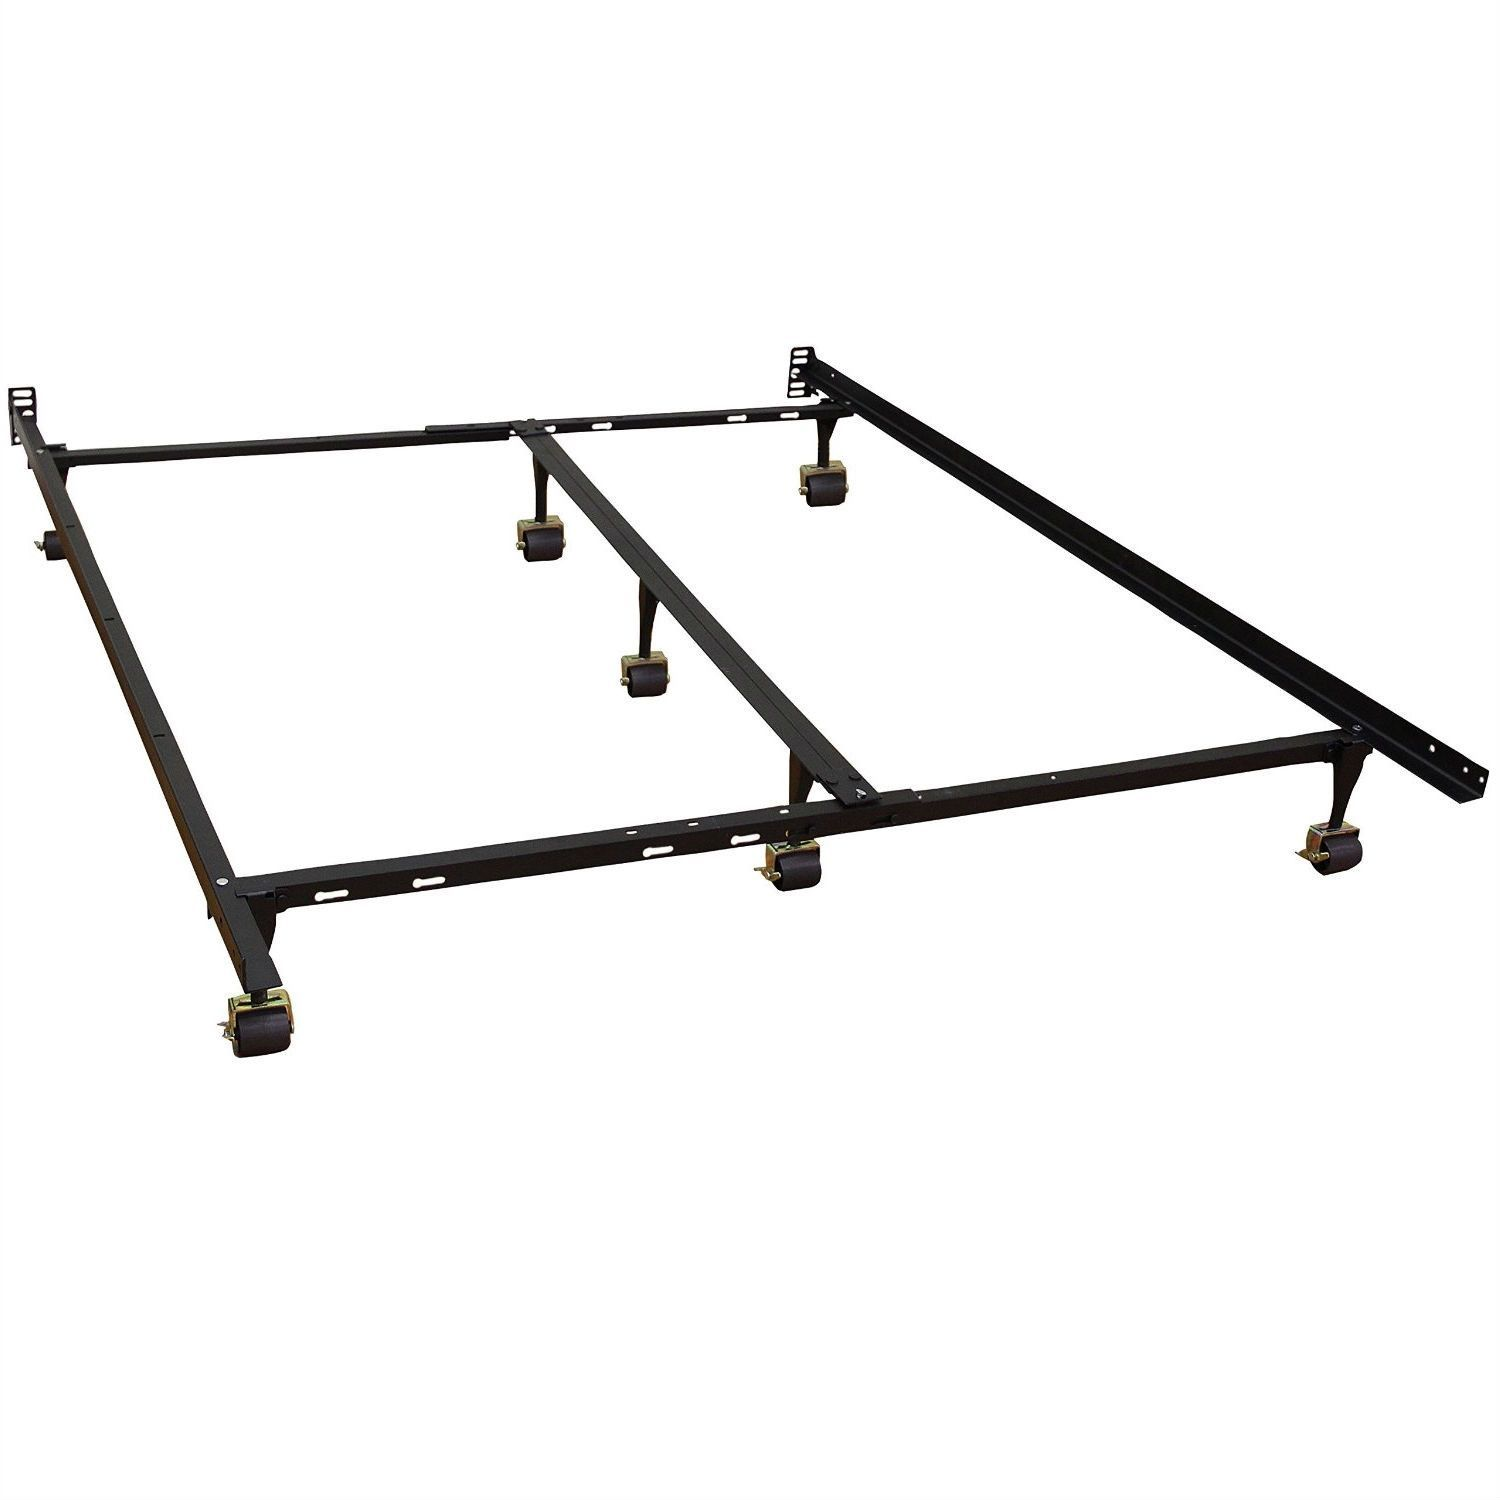 california king size metal bed frame with 7 legs and locking rug rollers wheels